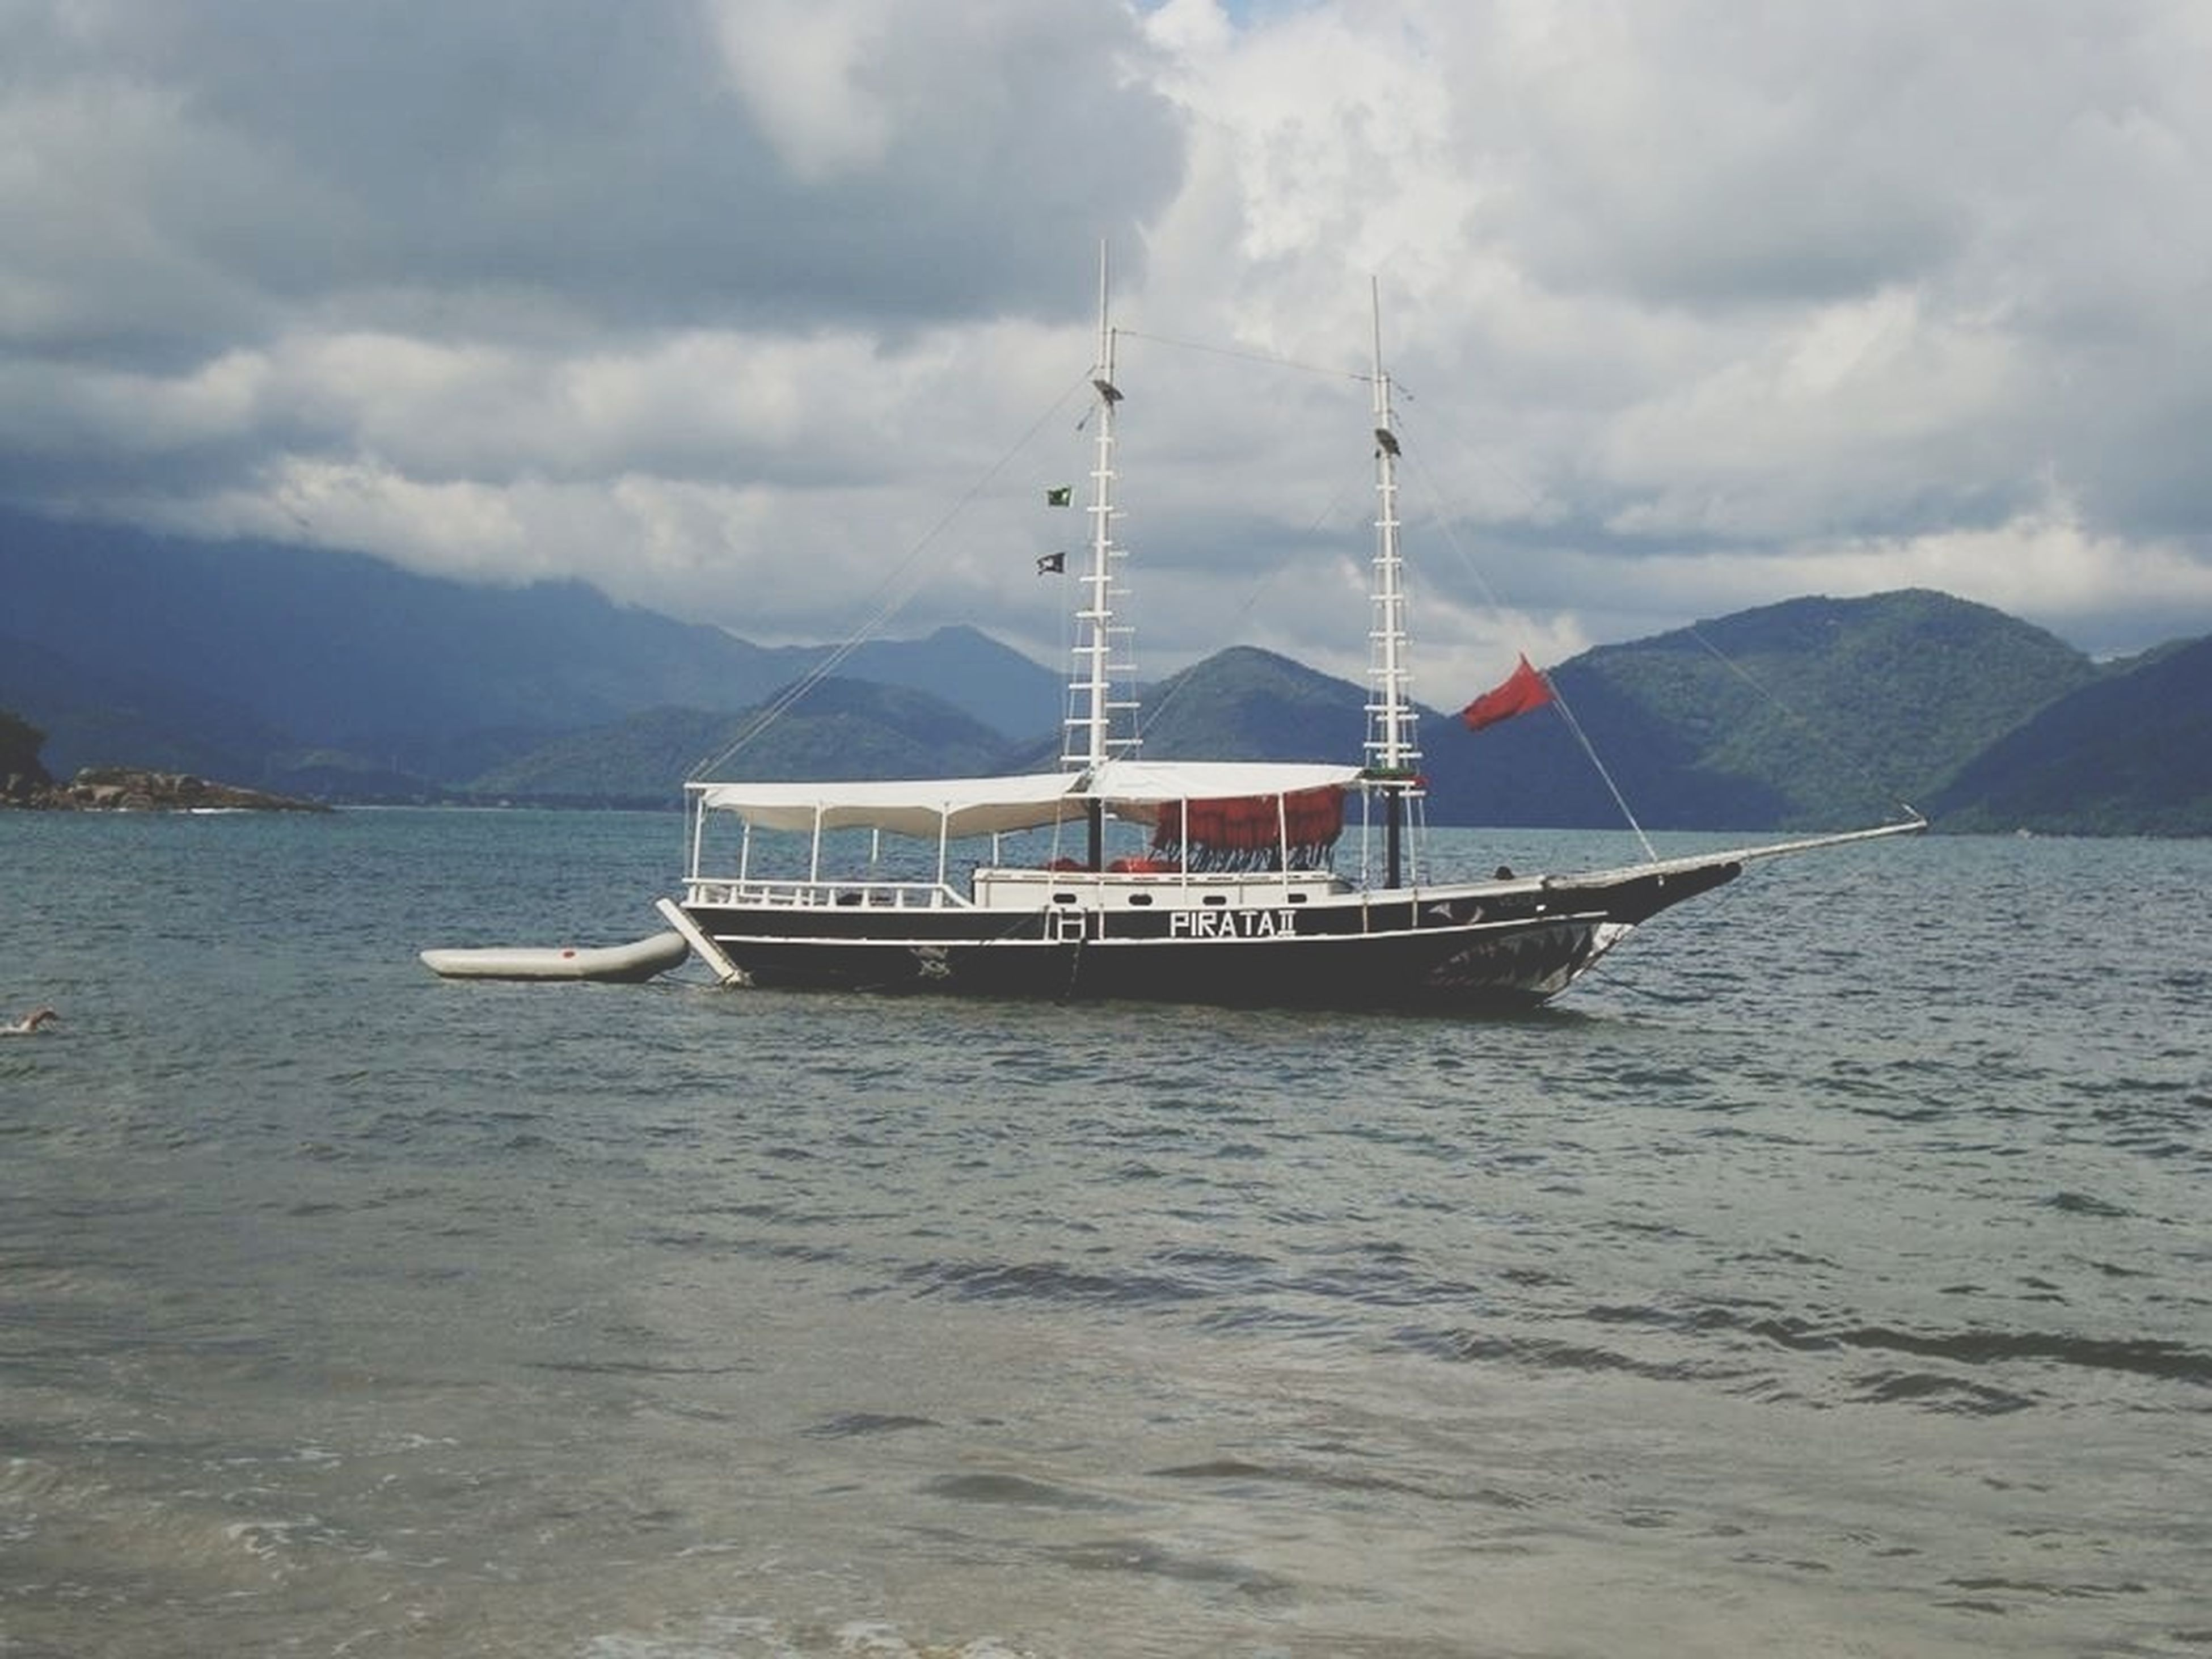 nautical vessel, transportation, boat, mode of transport, water, sky, mountain, sea, cloud - sky, waterfront, moored, cloudy, sailing, tranquil scene, tranquility, travel, scenics, nature, sailboat, cloud